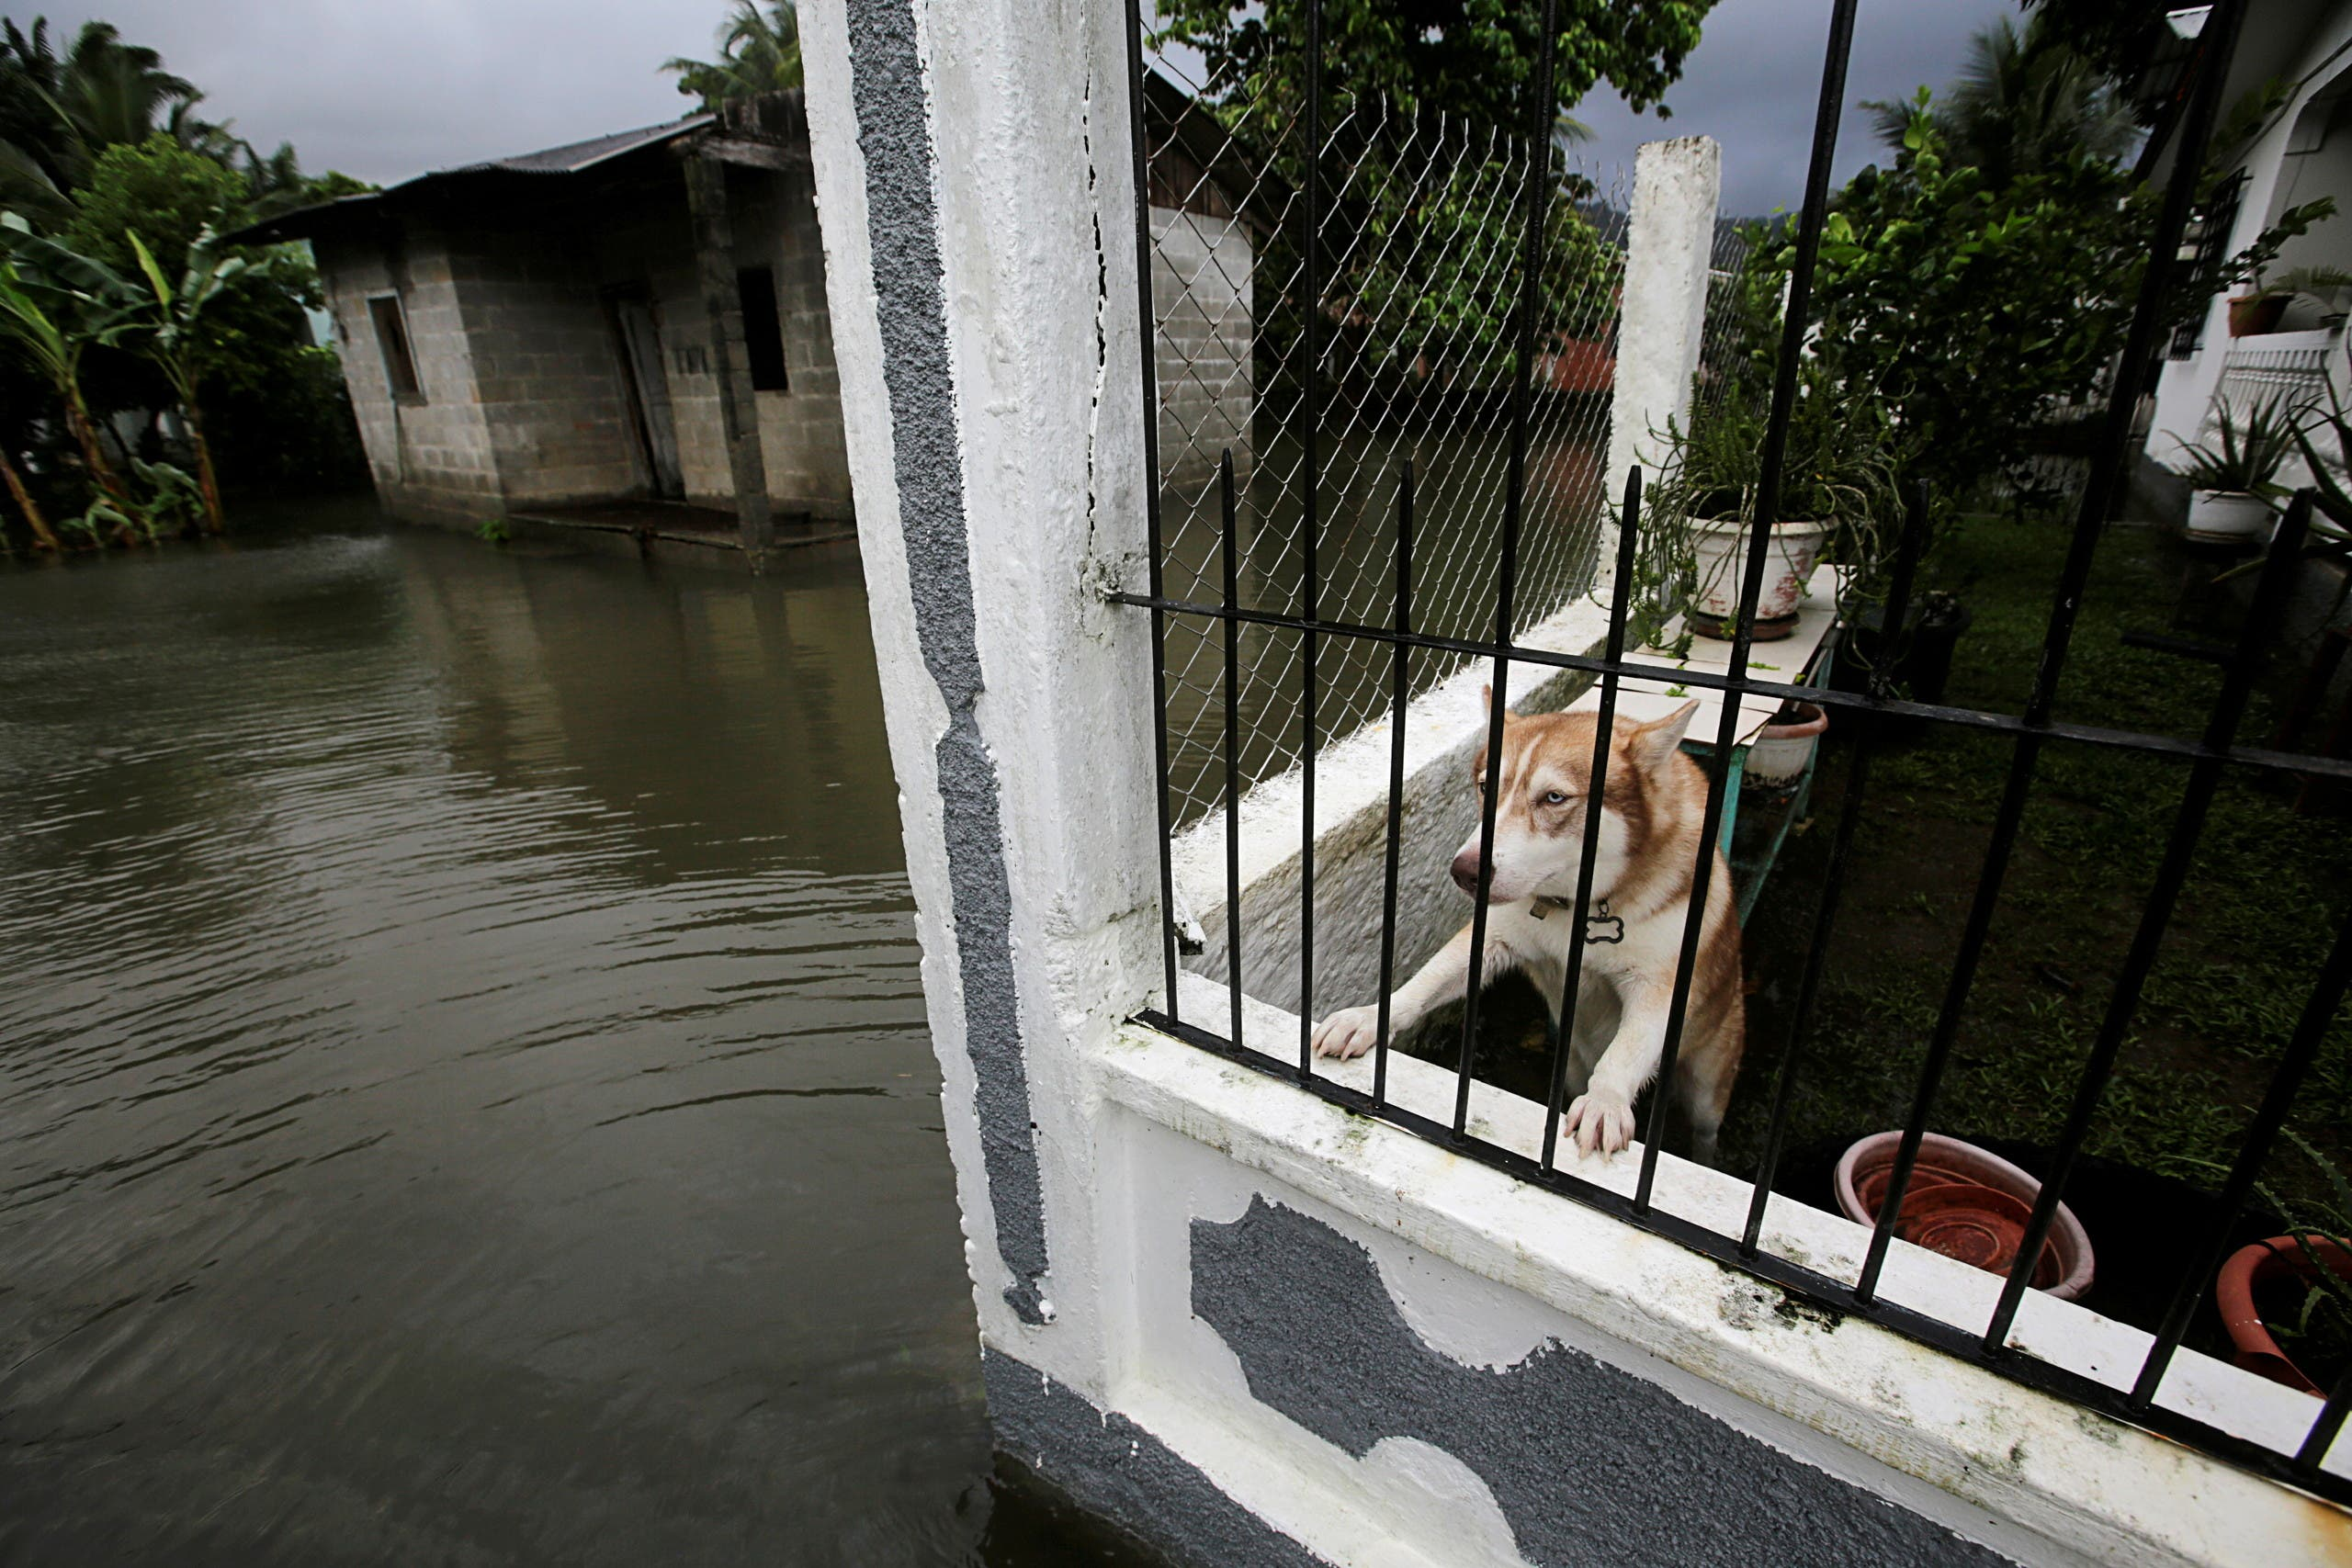 A dog is pictured inside a house at a neighborhood affected by floods as Hurricane Eta approaches, in Tela, Honduras November 3, 2020. (Reuters)